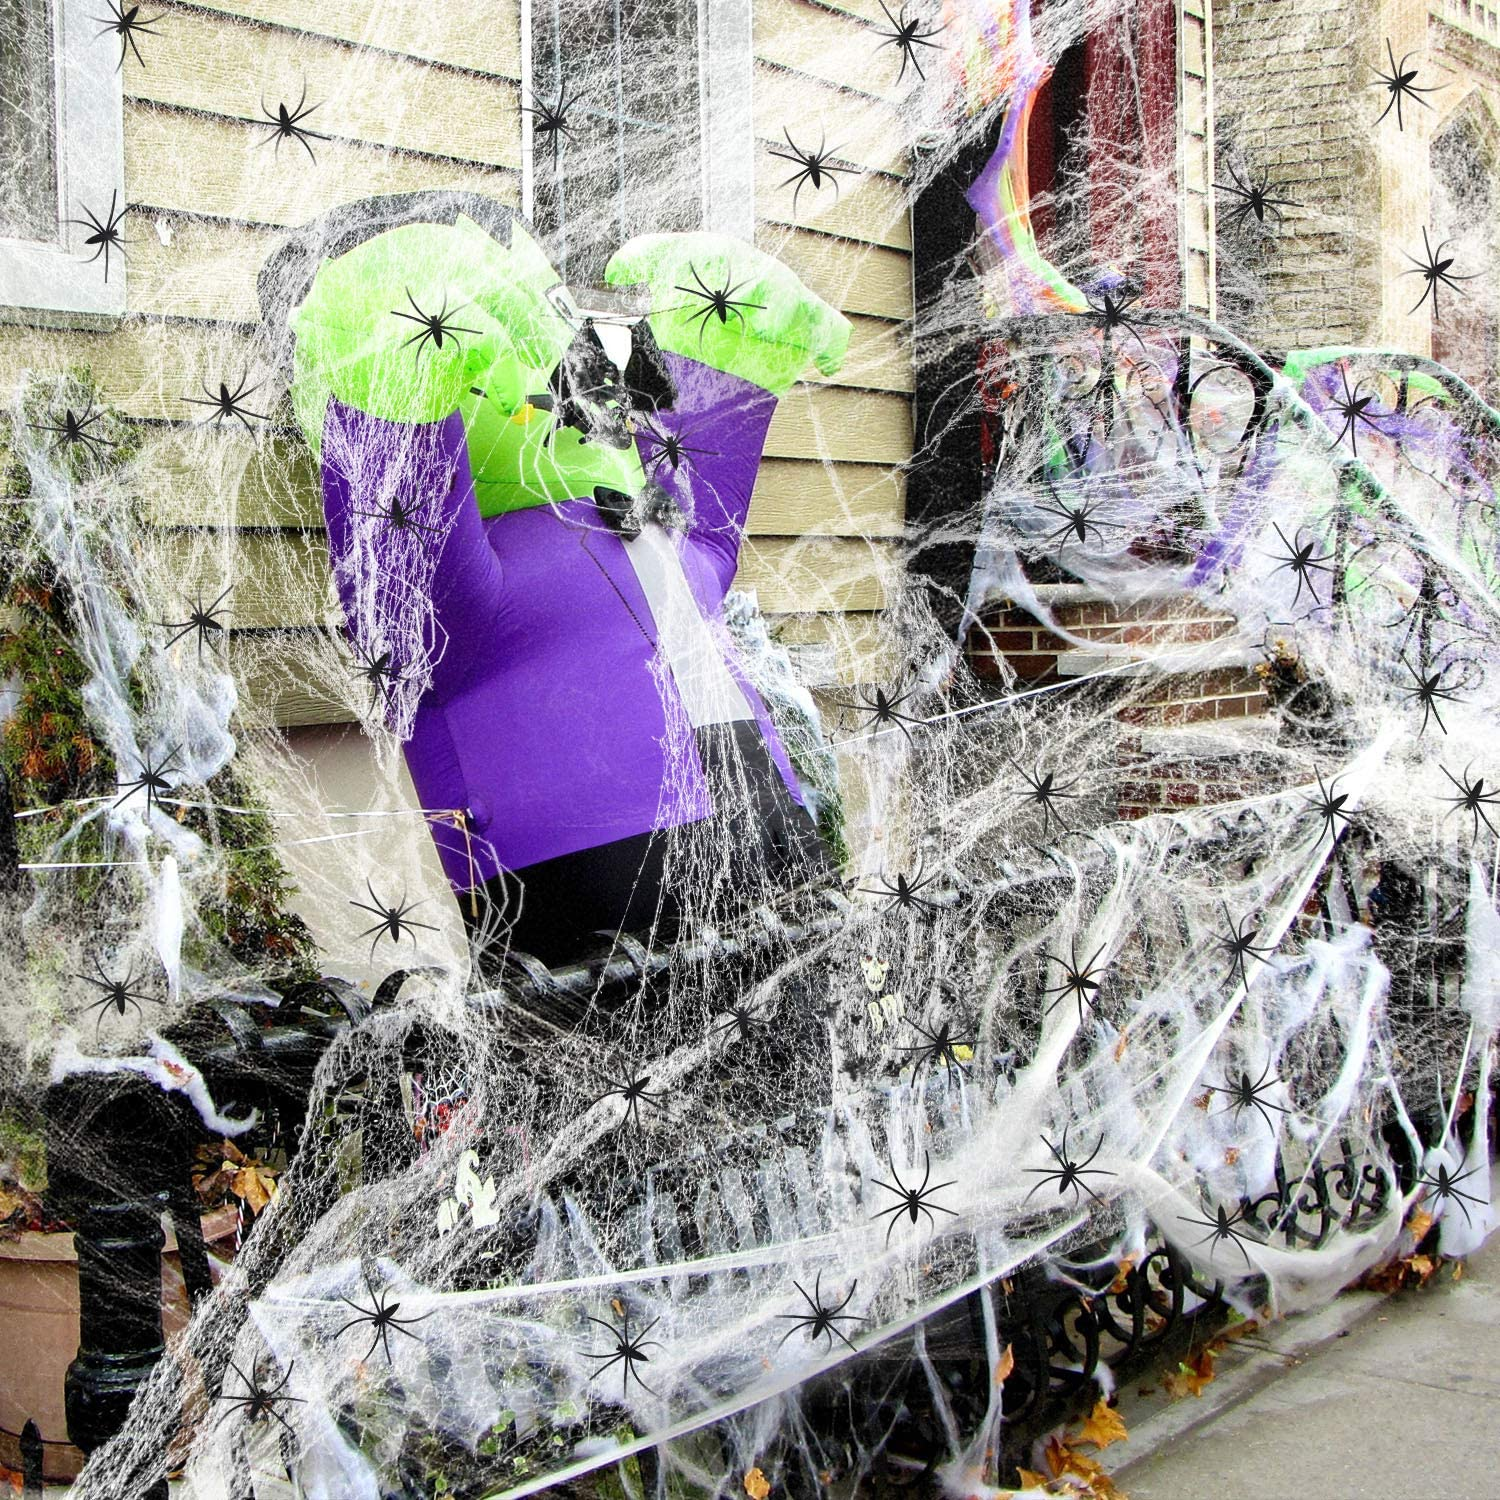 1200 sqft Halloween Spider Web Decor with 30 Fake Plastic Spiders. Scary Outdoor + Indoor Stretchable Spiderweb Decorations. Best Home, Office, Party, Yard + Tree Cobweb Webbing(300g)